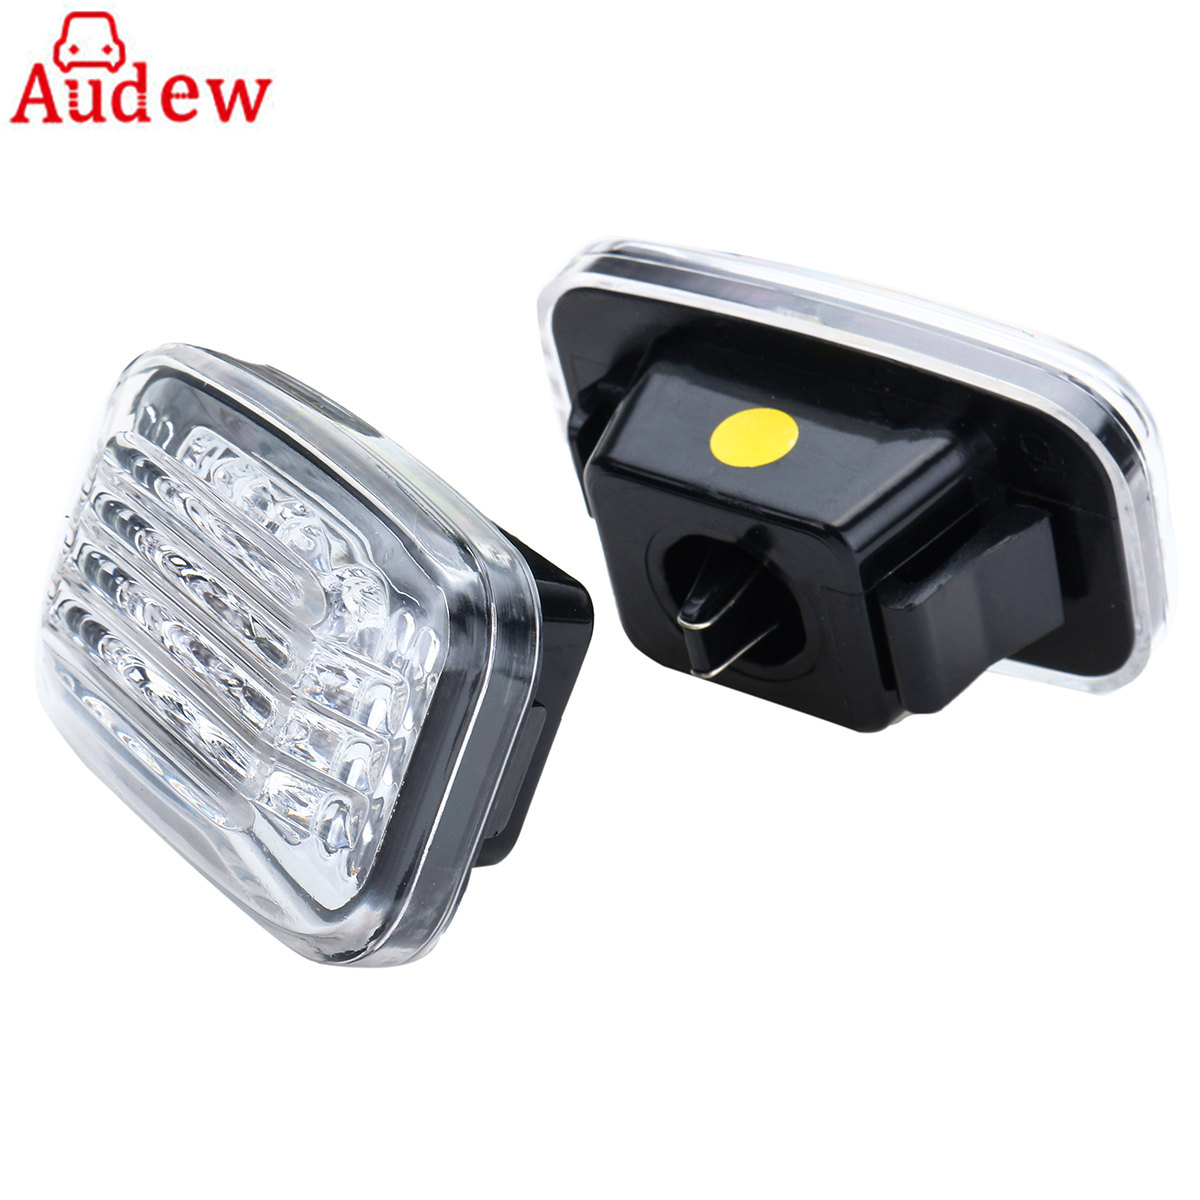 2Pcs Car Side Marker Lamp LED Turn Signal Light For Toyota Land Cruiser 70 80 100 Series Amber